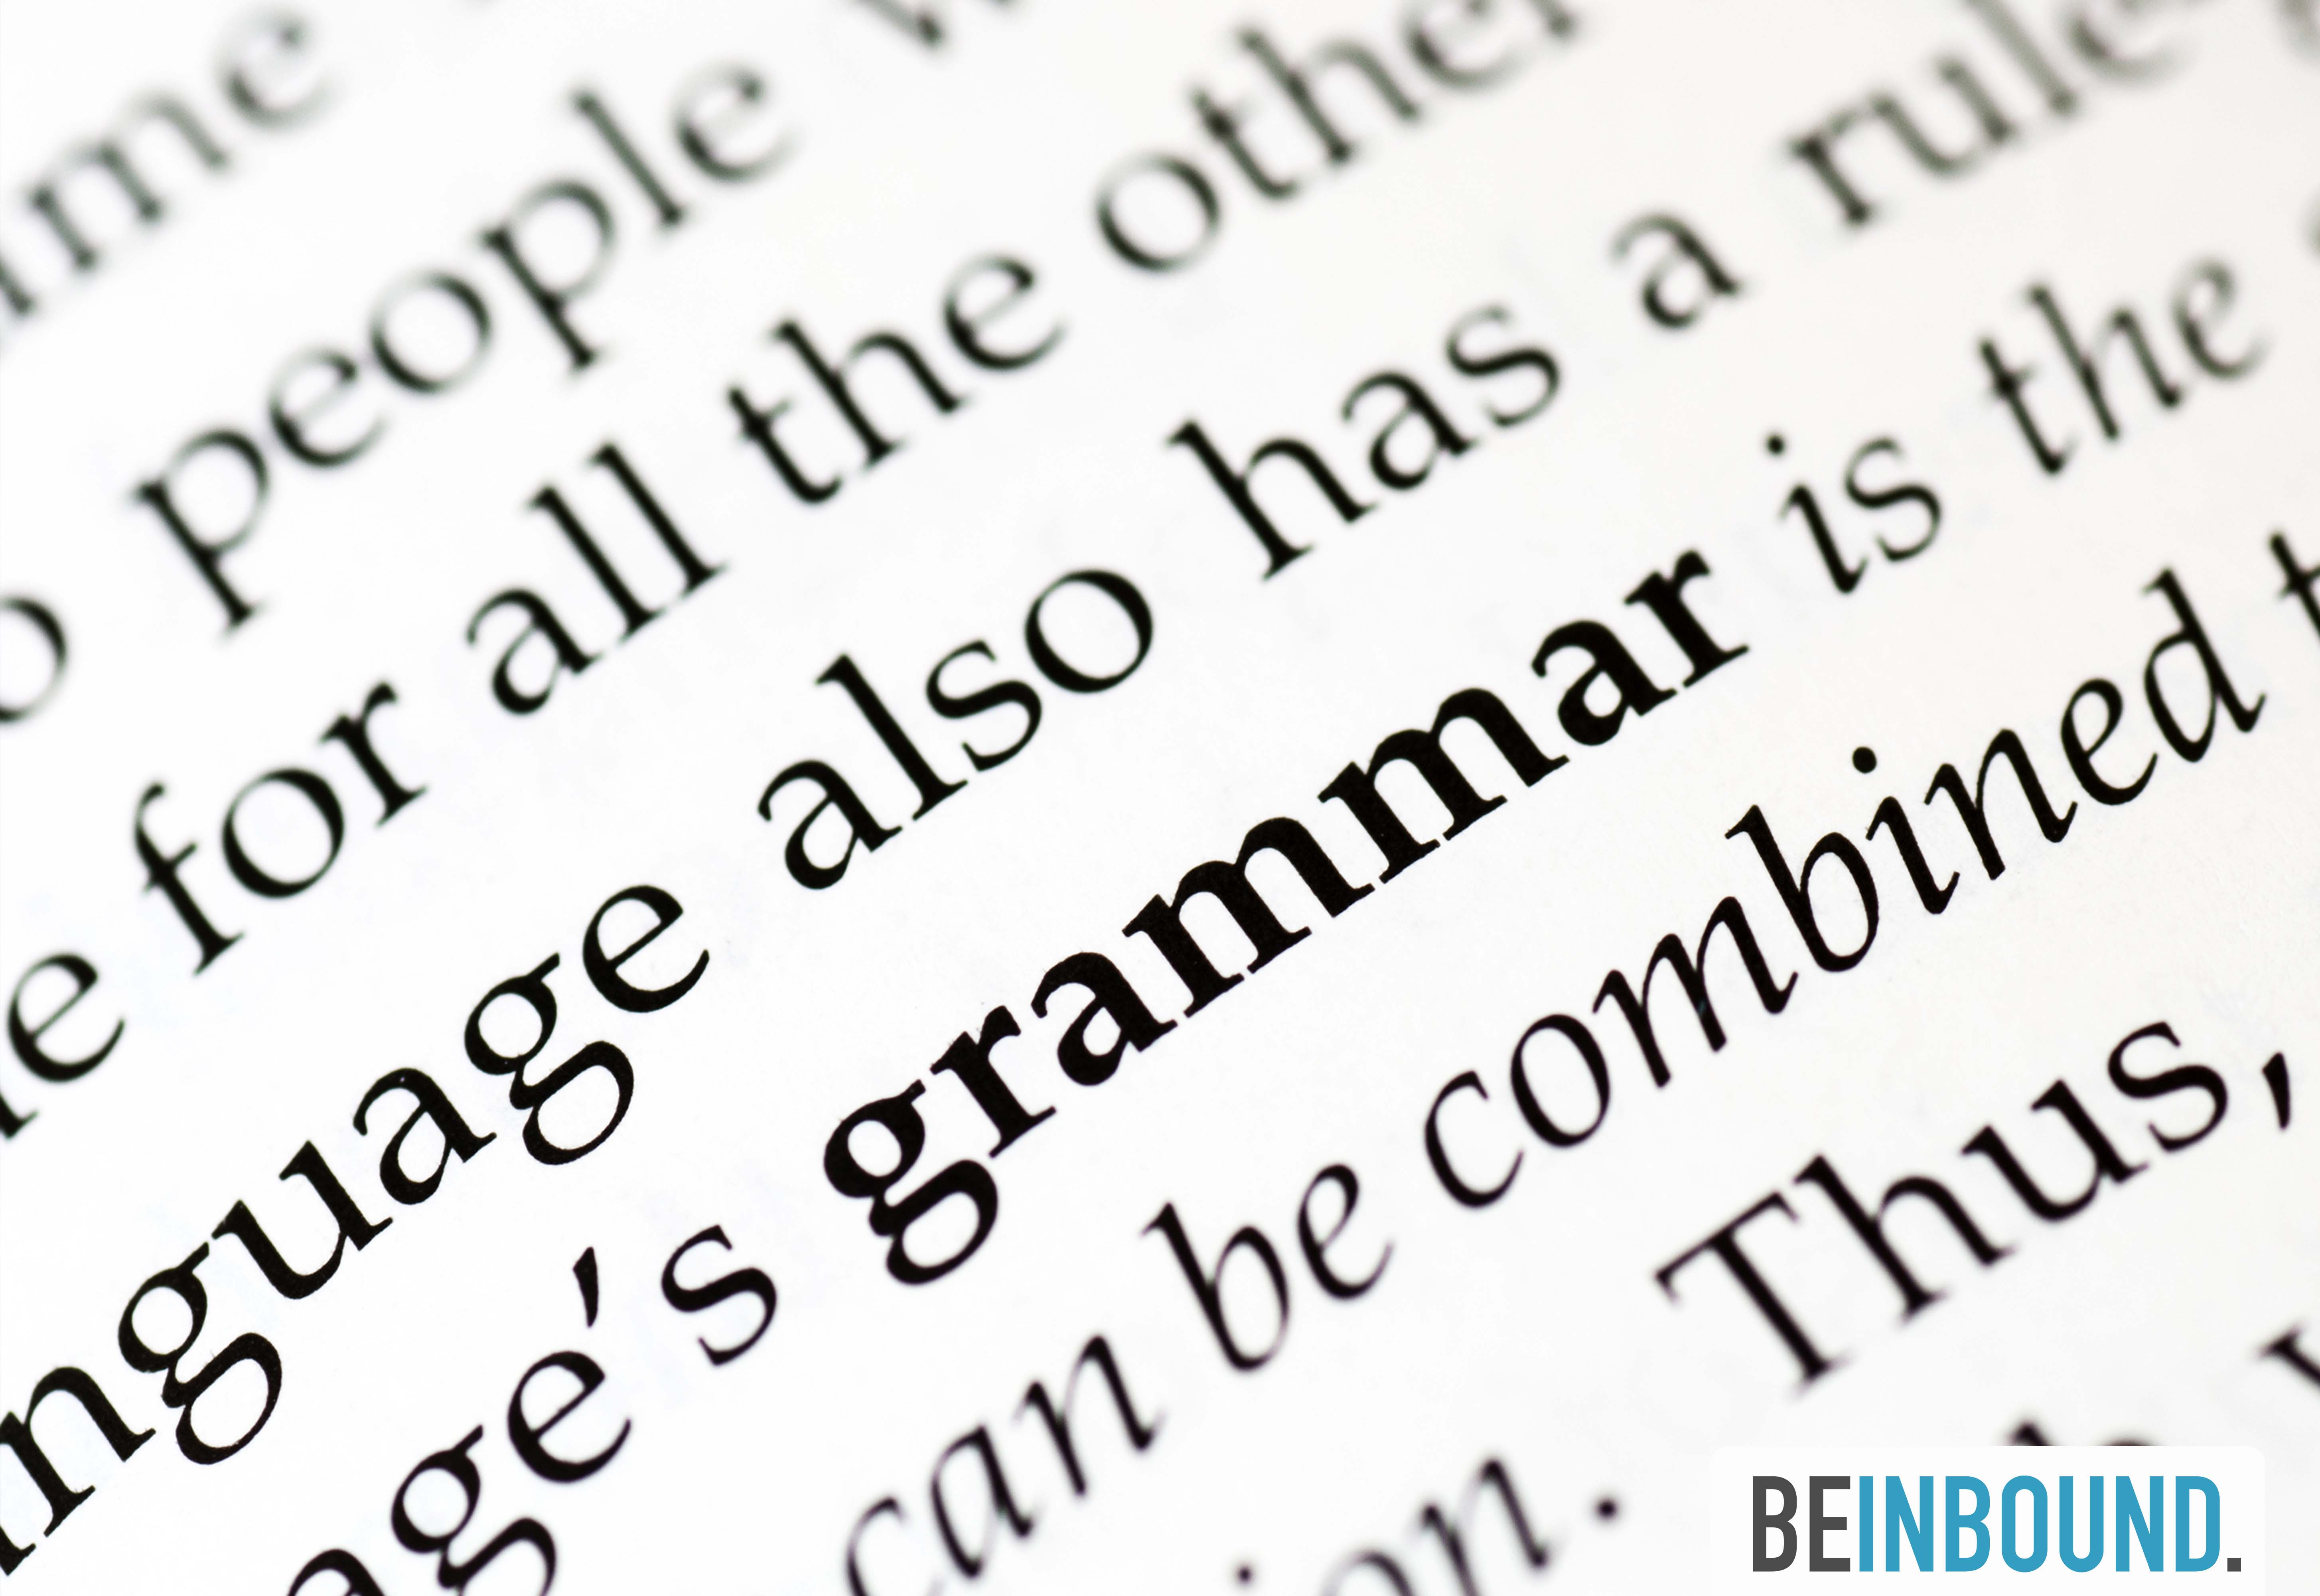 25_grammar_mistakes_that_make_your_content_go_from_great_to_gruesome_